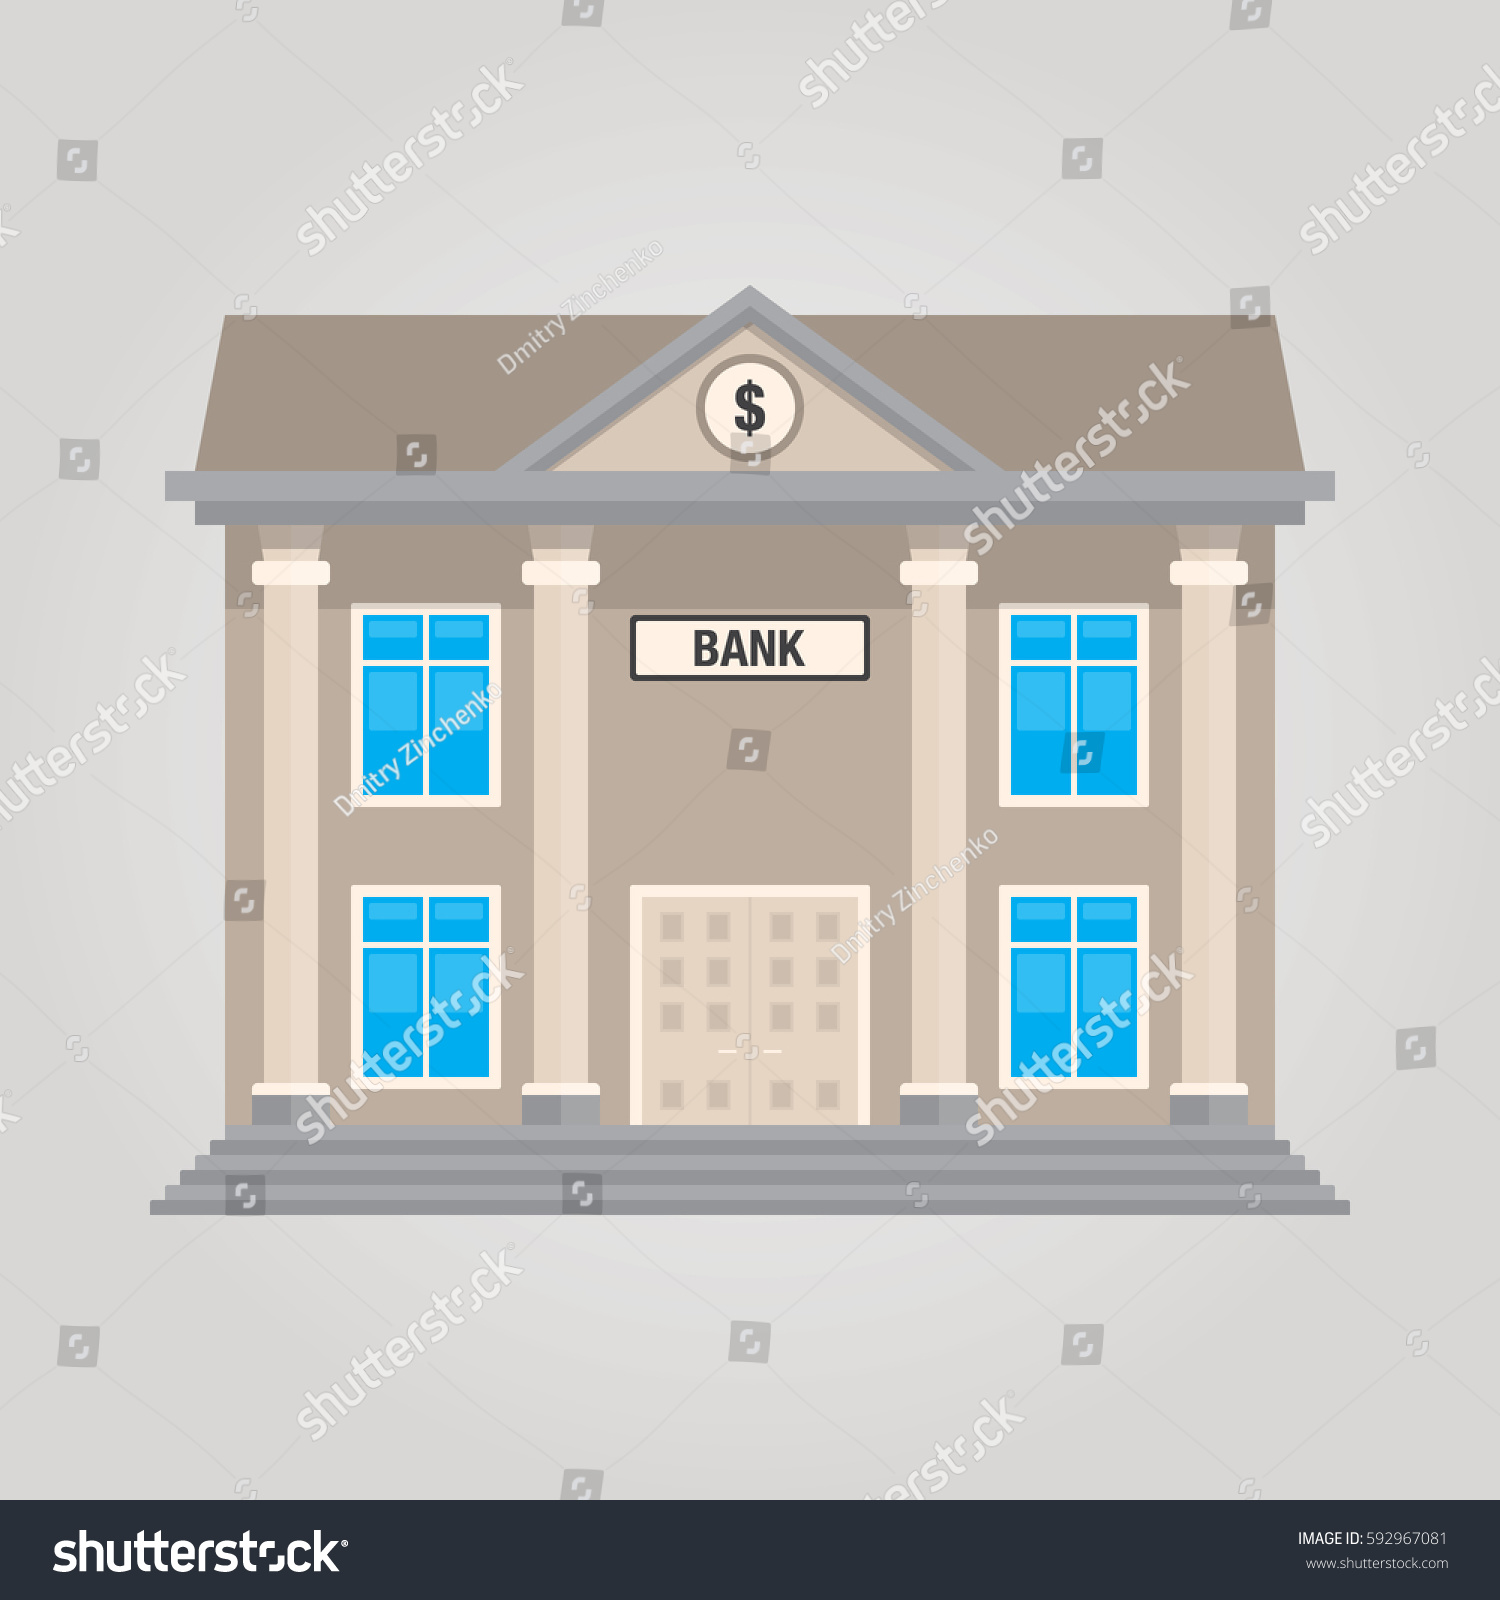 Bank Building Front Isolated Vector Illustration In Flat Design Style